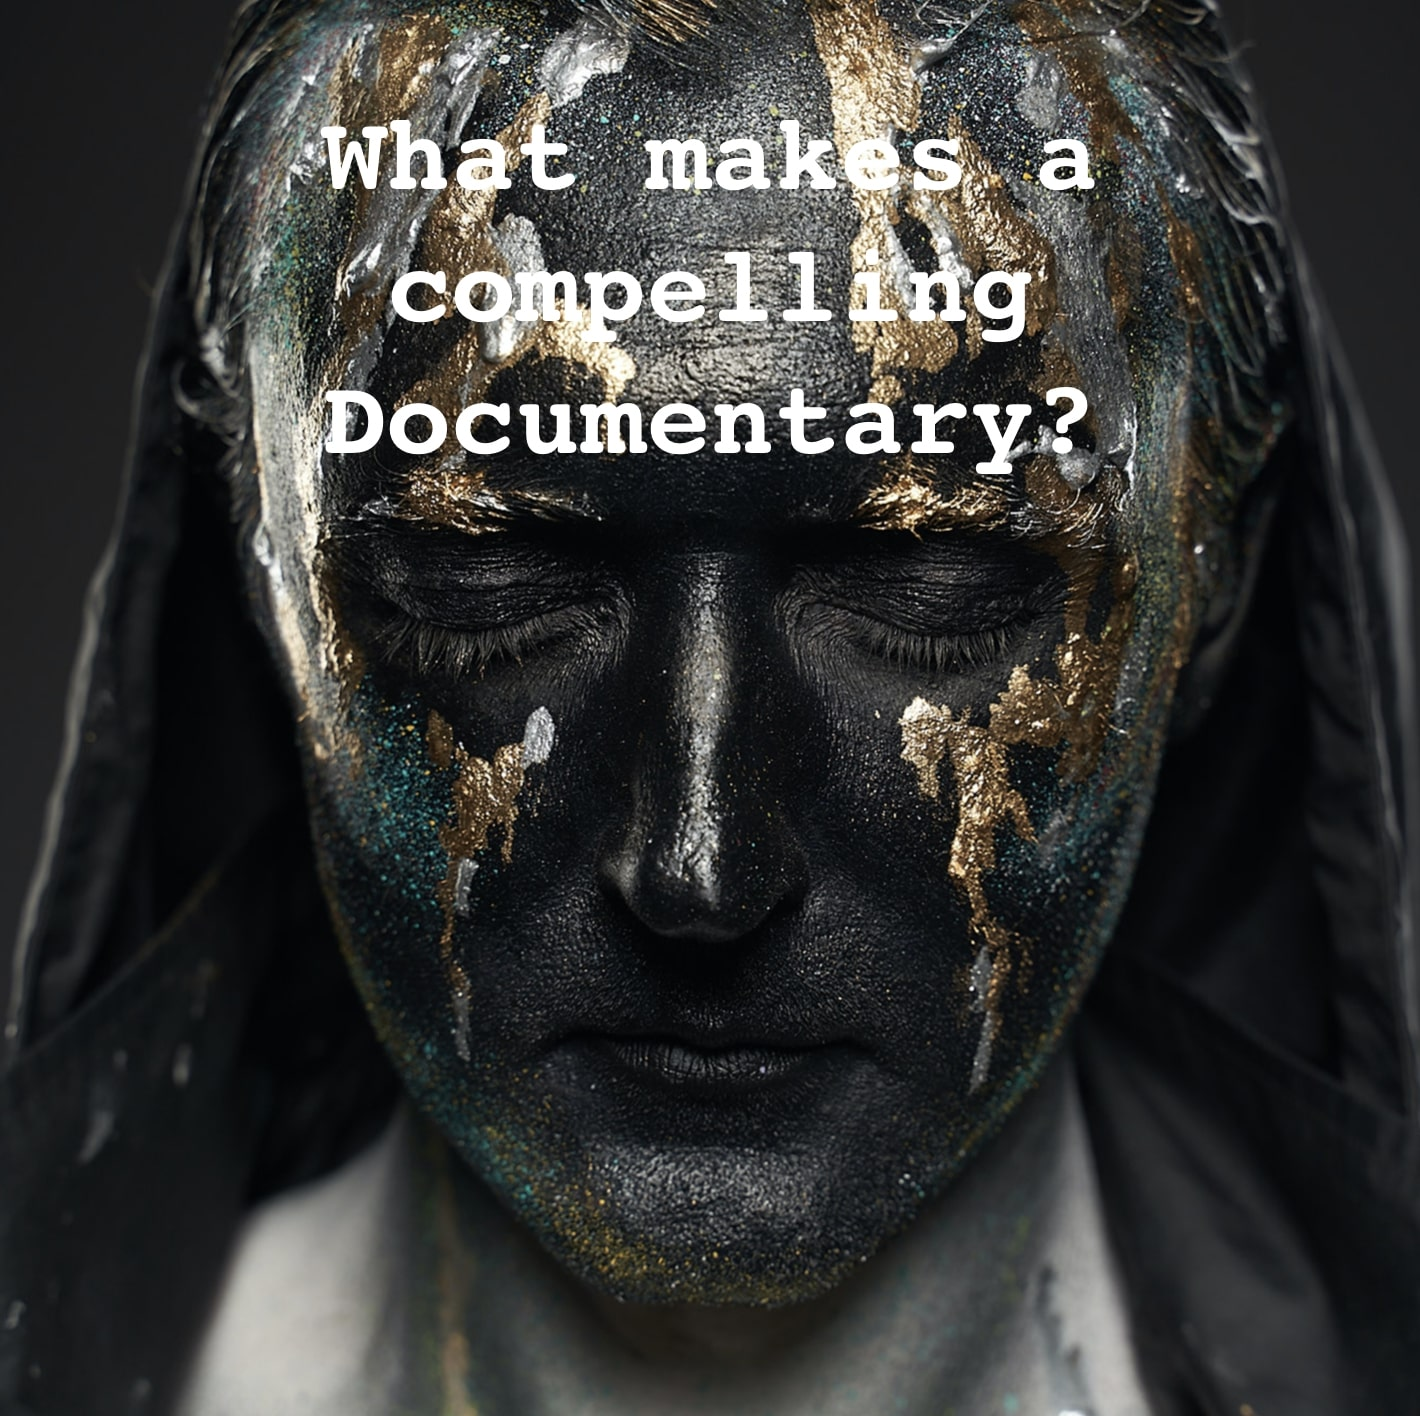 WHAT DO YOU THINK makes a compelling documentary?